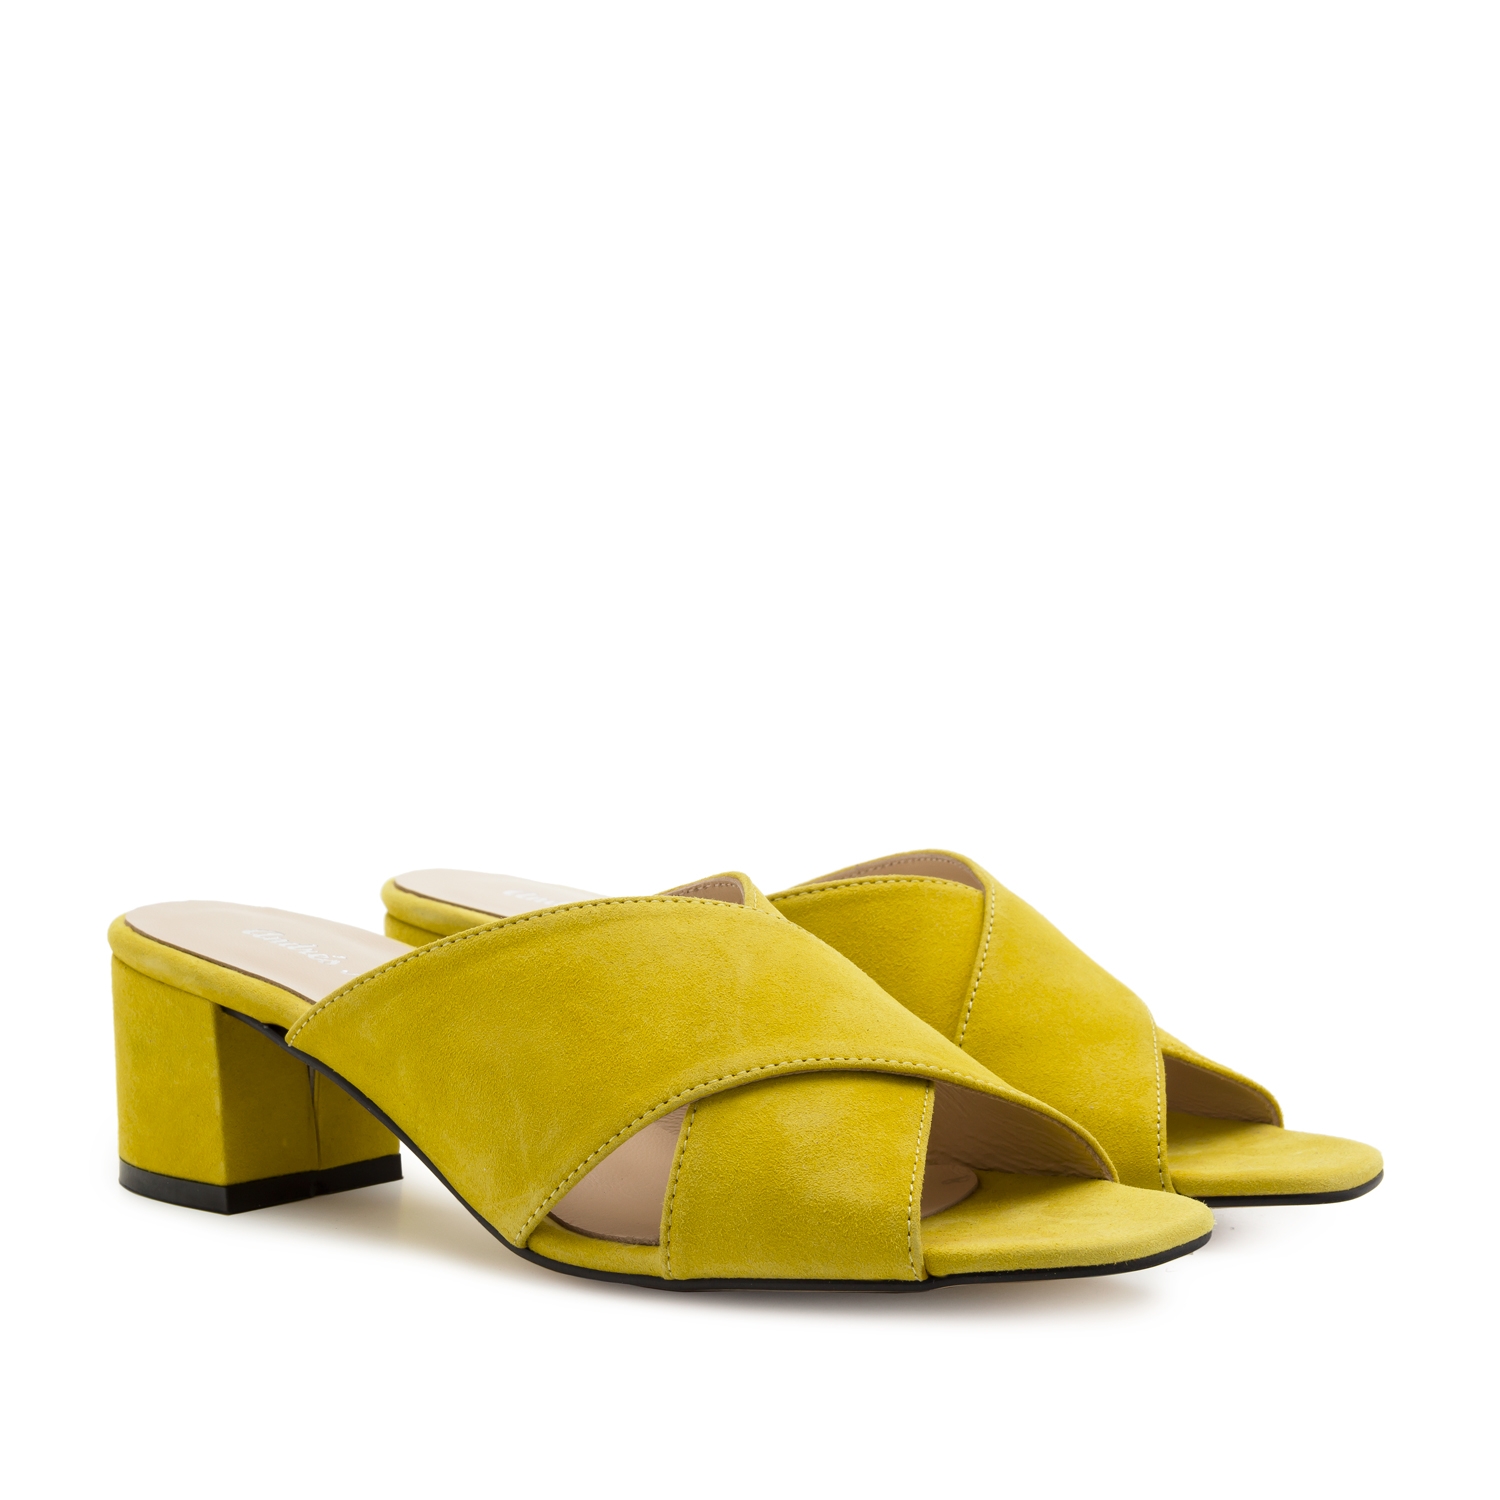 Crossover Mules in Mustard Yellow Suede Leather